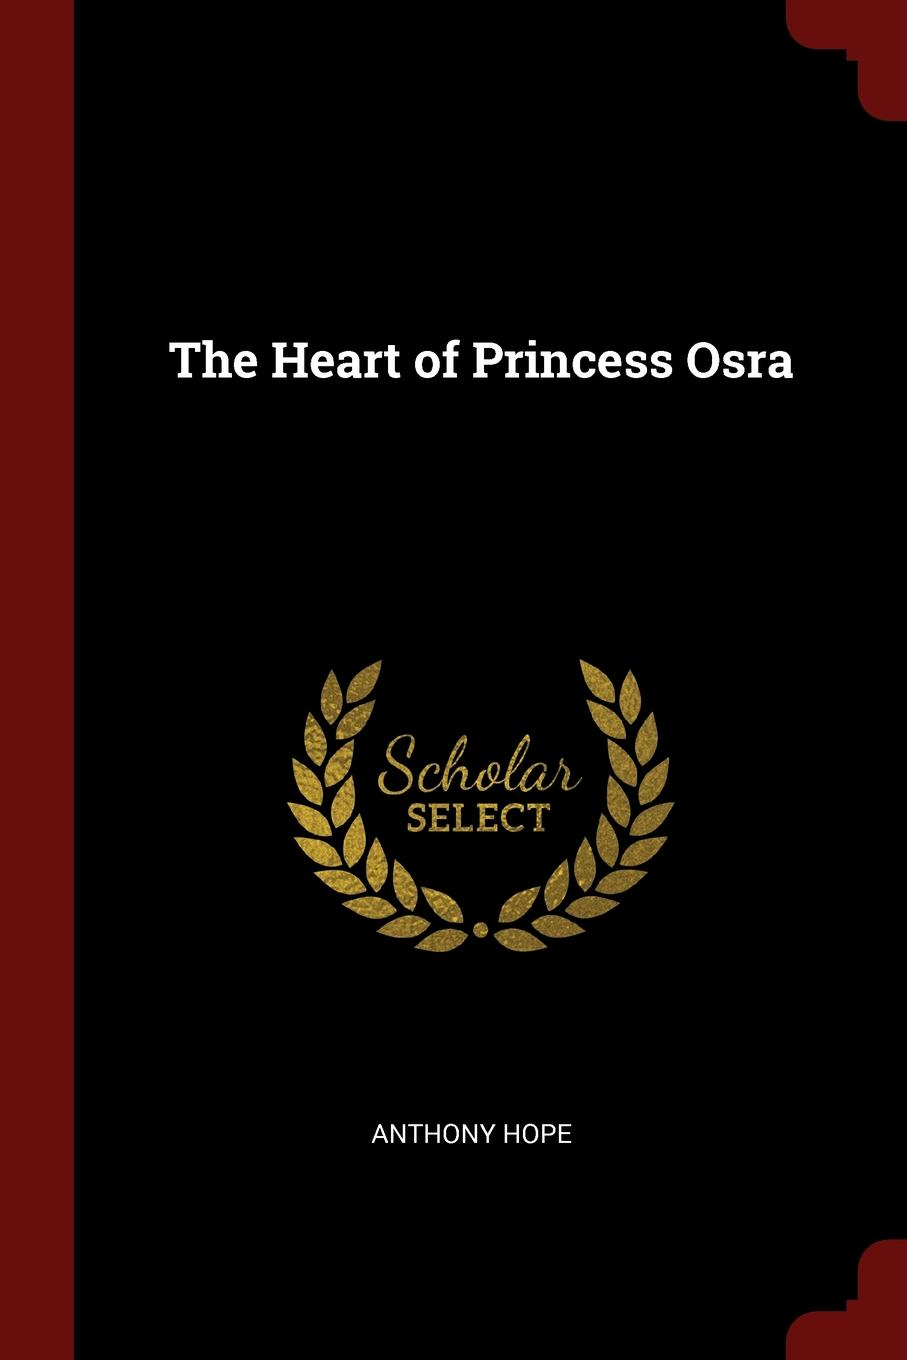 Anthony Hope The Heart of Princess Osra hope anthony the heart of princess osra